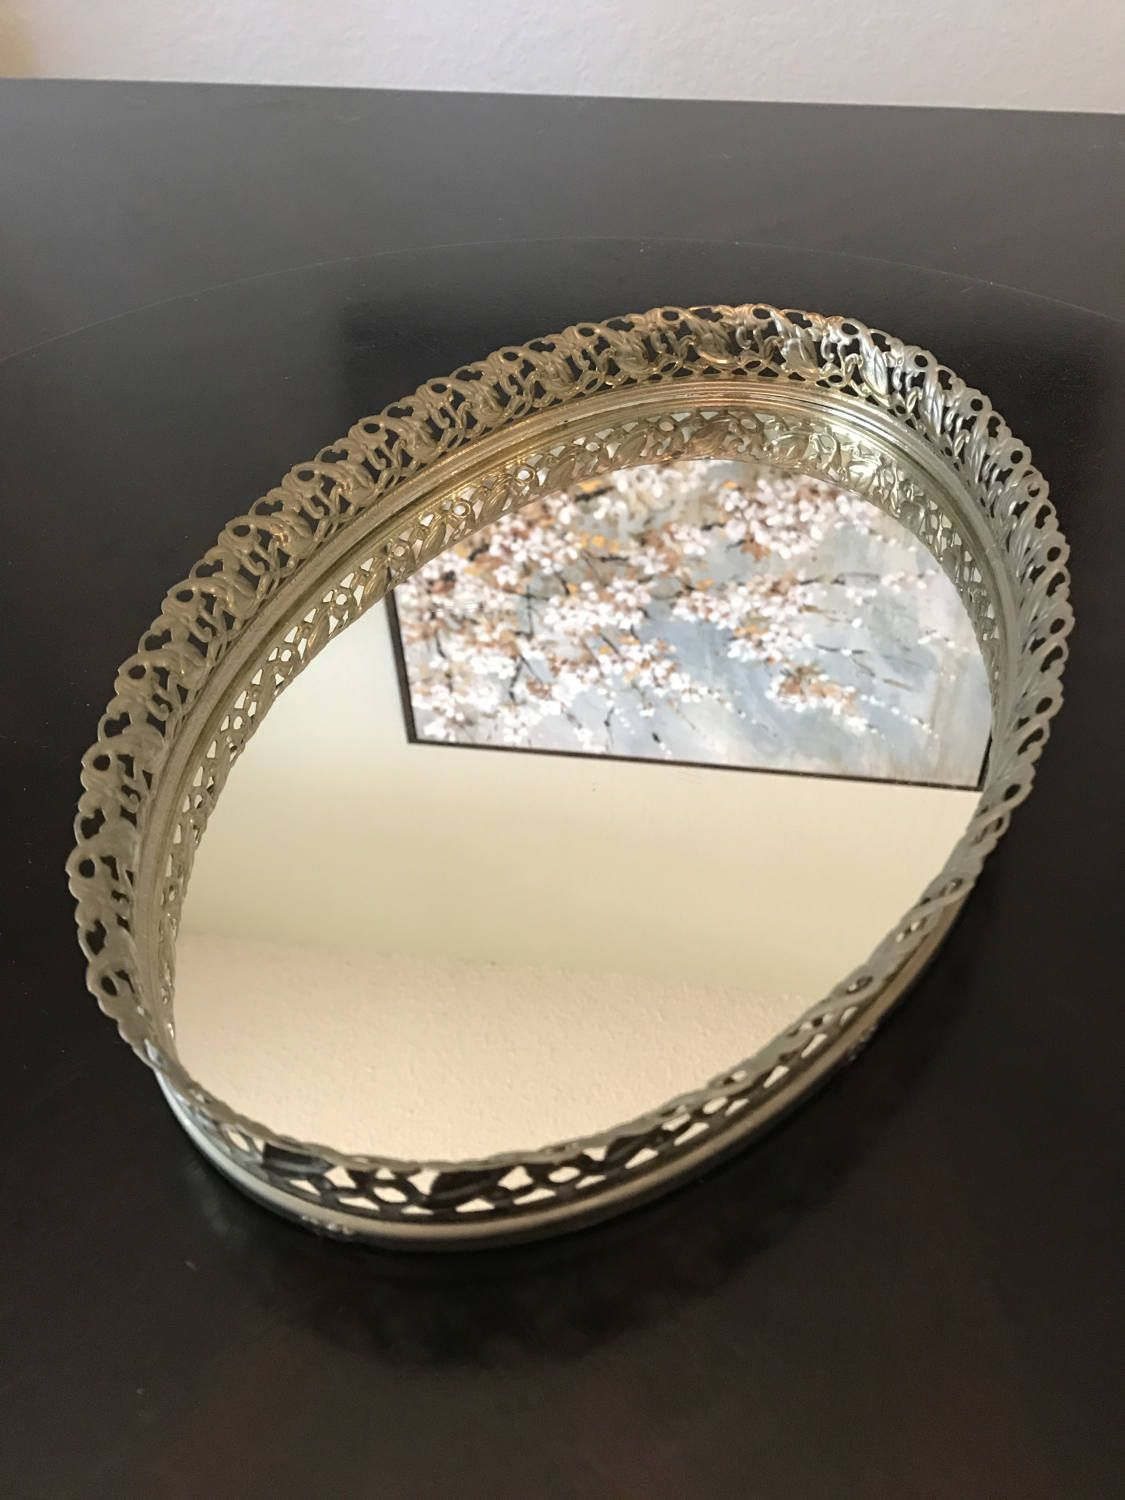 Vintage Oval Mirror Vanity Tray with Floral Filigree Rim